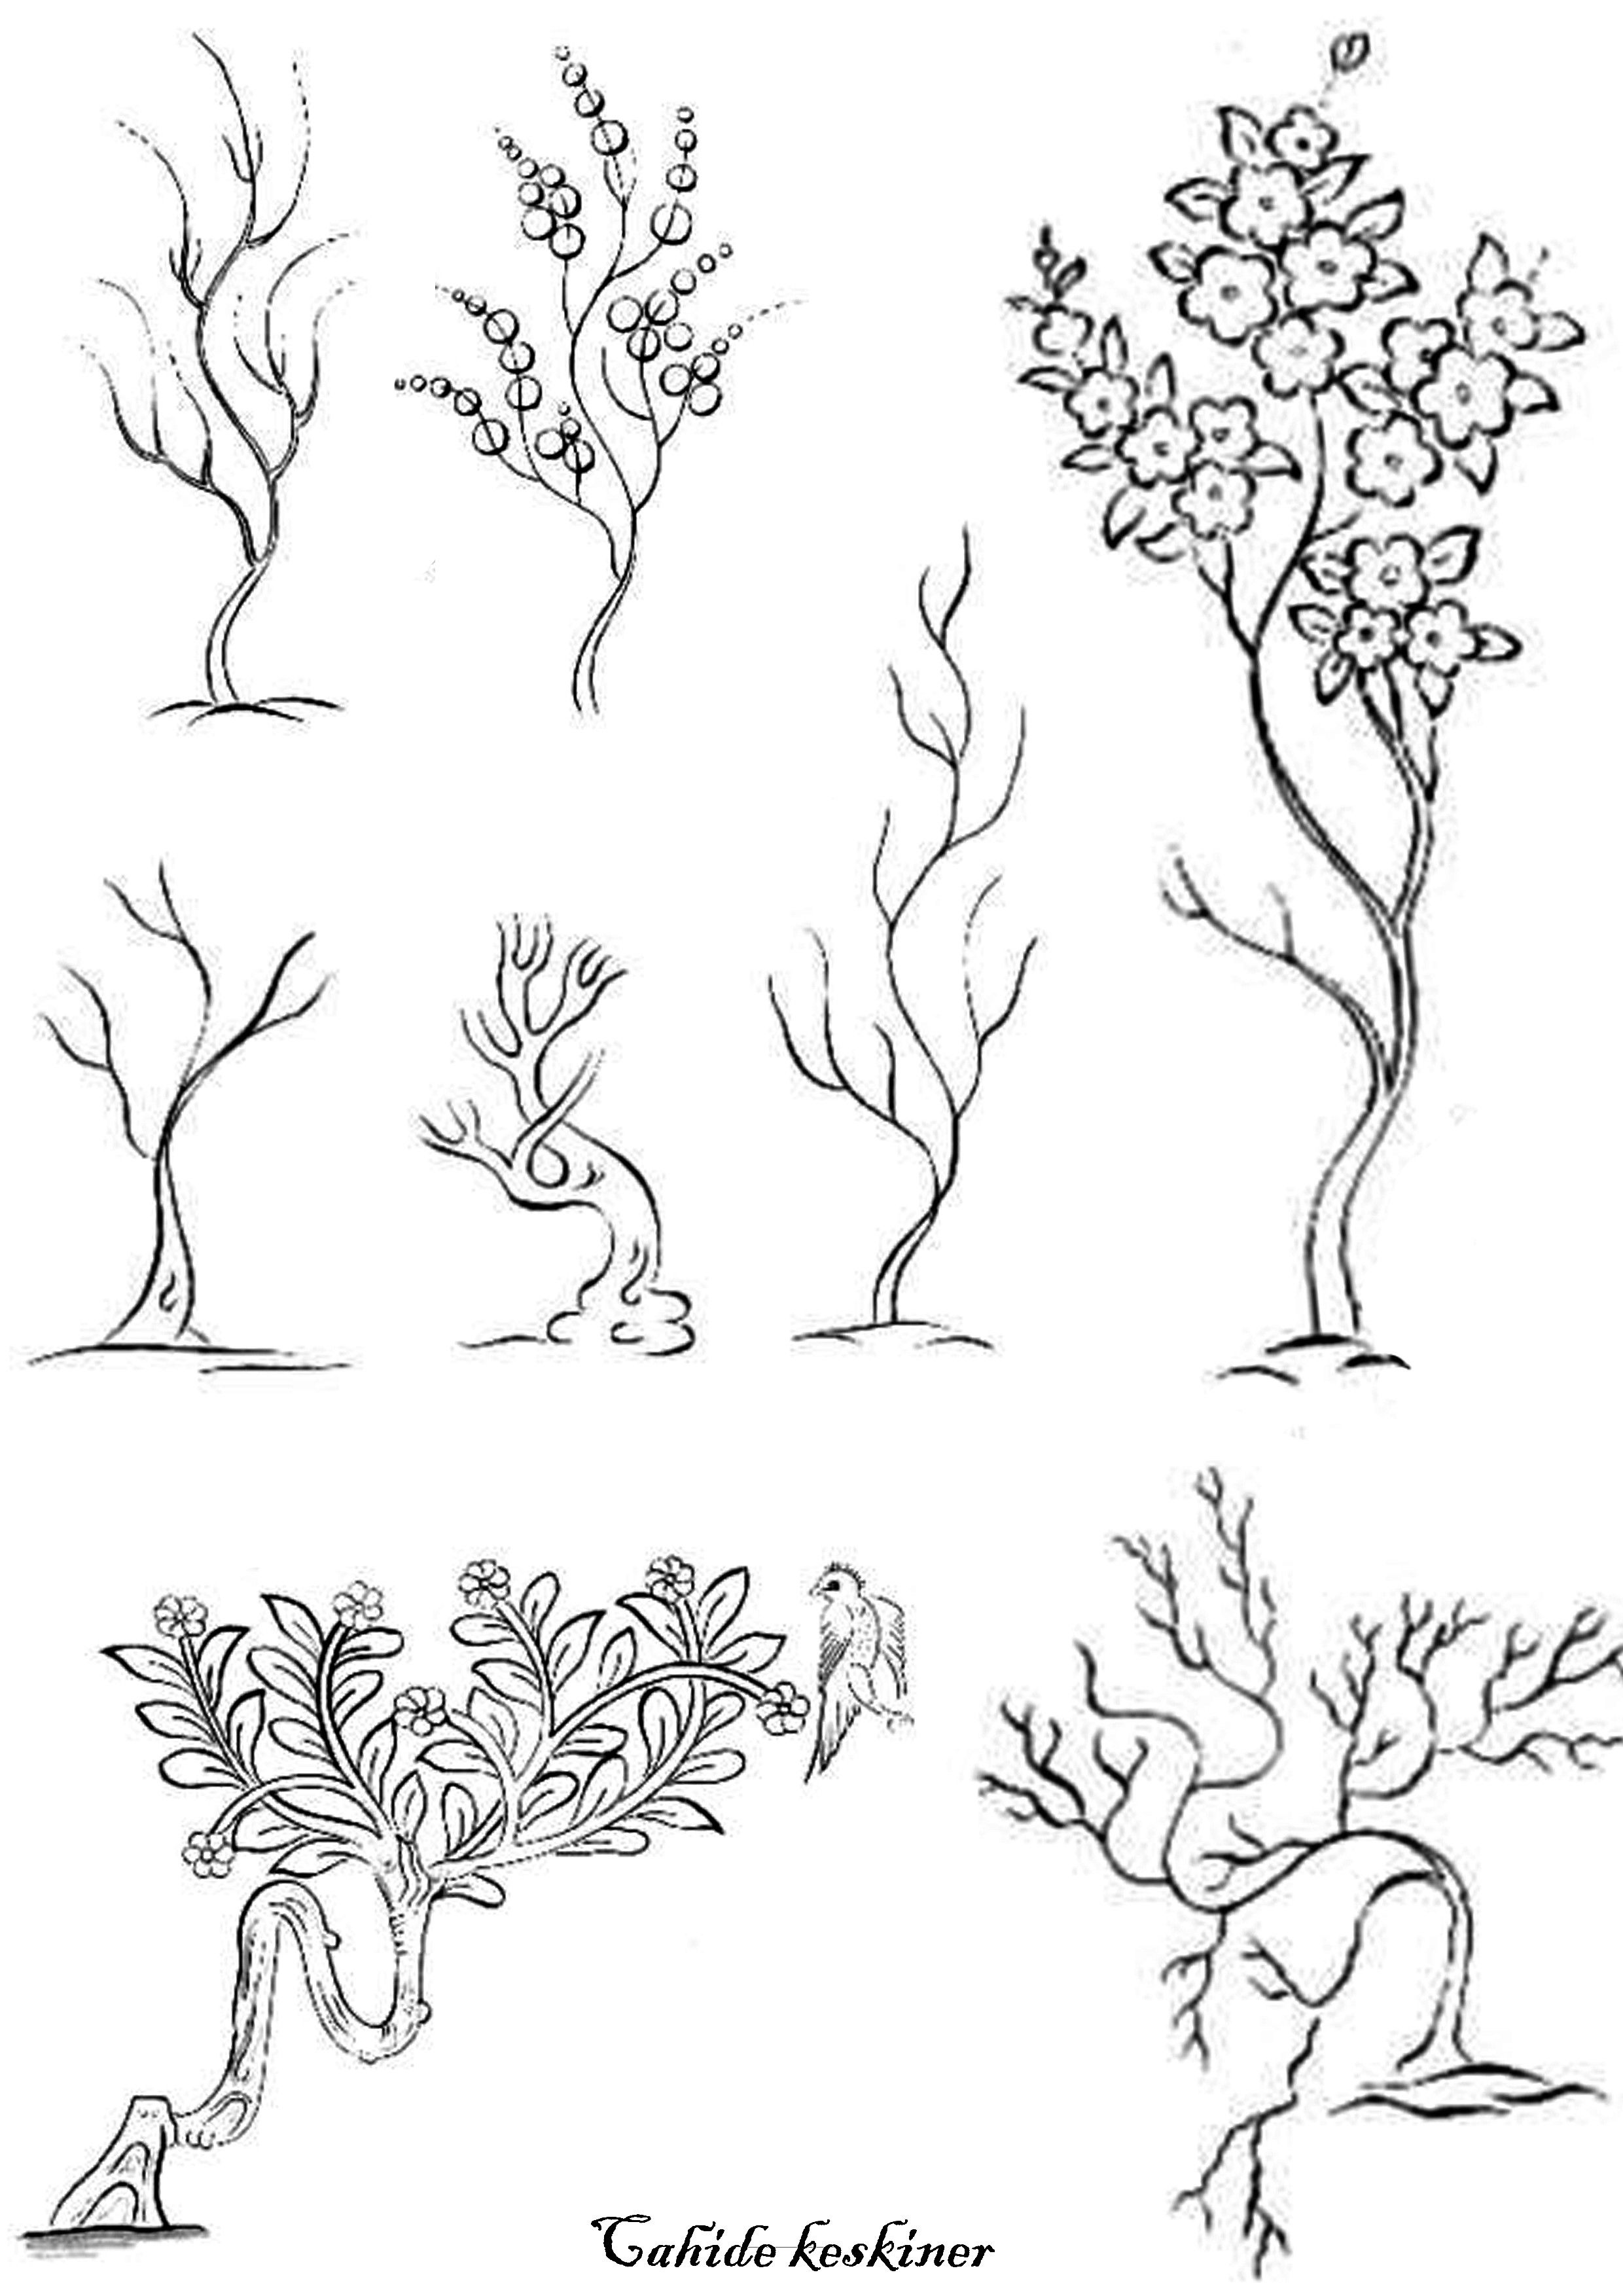 Pin by kalika 2 on hand embroidery patterns and designs i like drawing trees drawing flowers drawing art sketch painting painting art arabic pattern doodle drawings drawing people hand embroidery patterns bankloansurffo Gallery